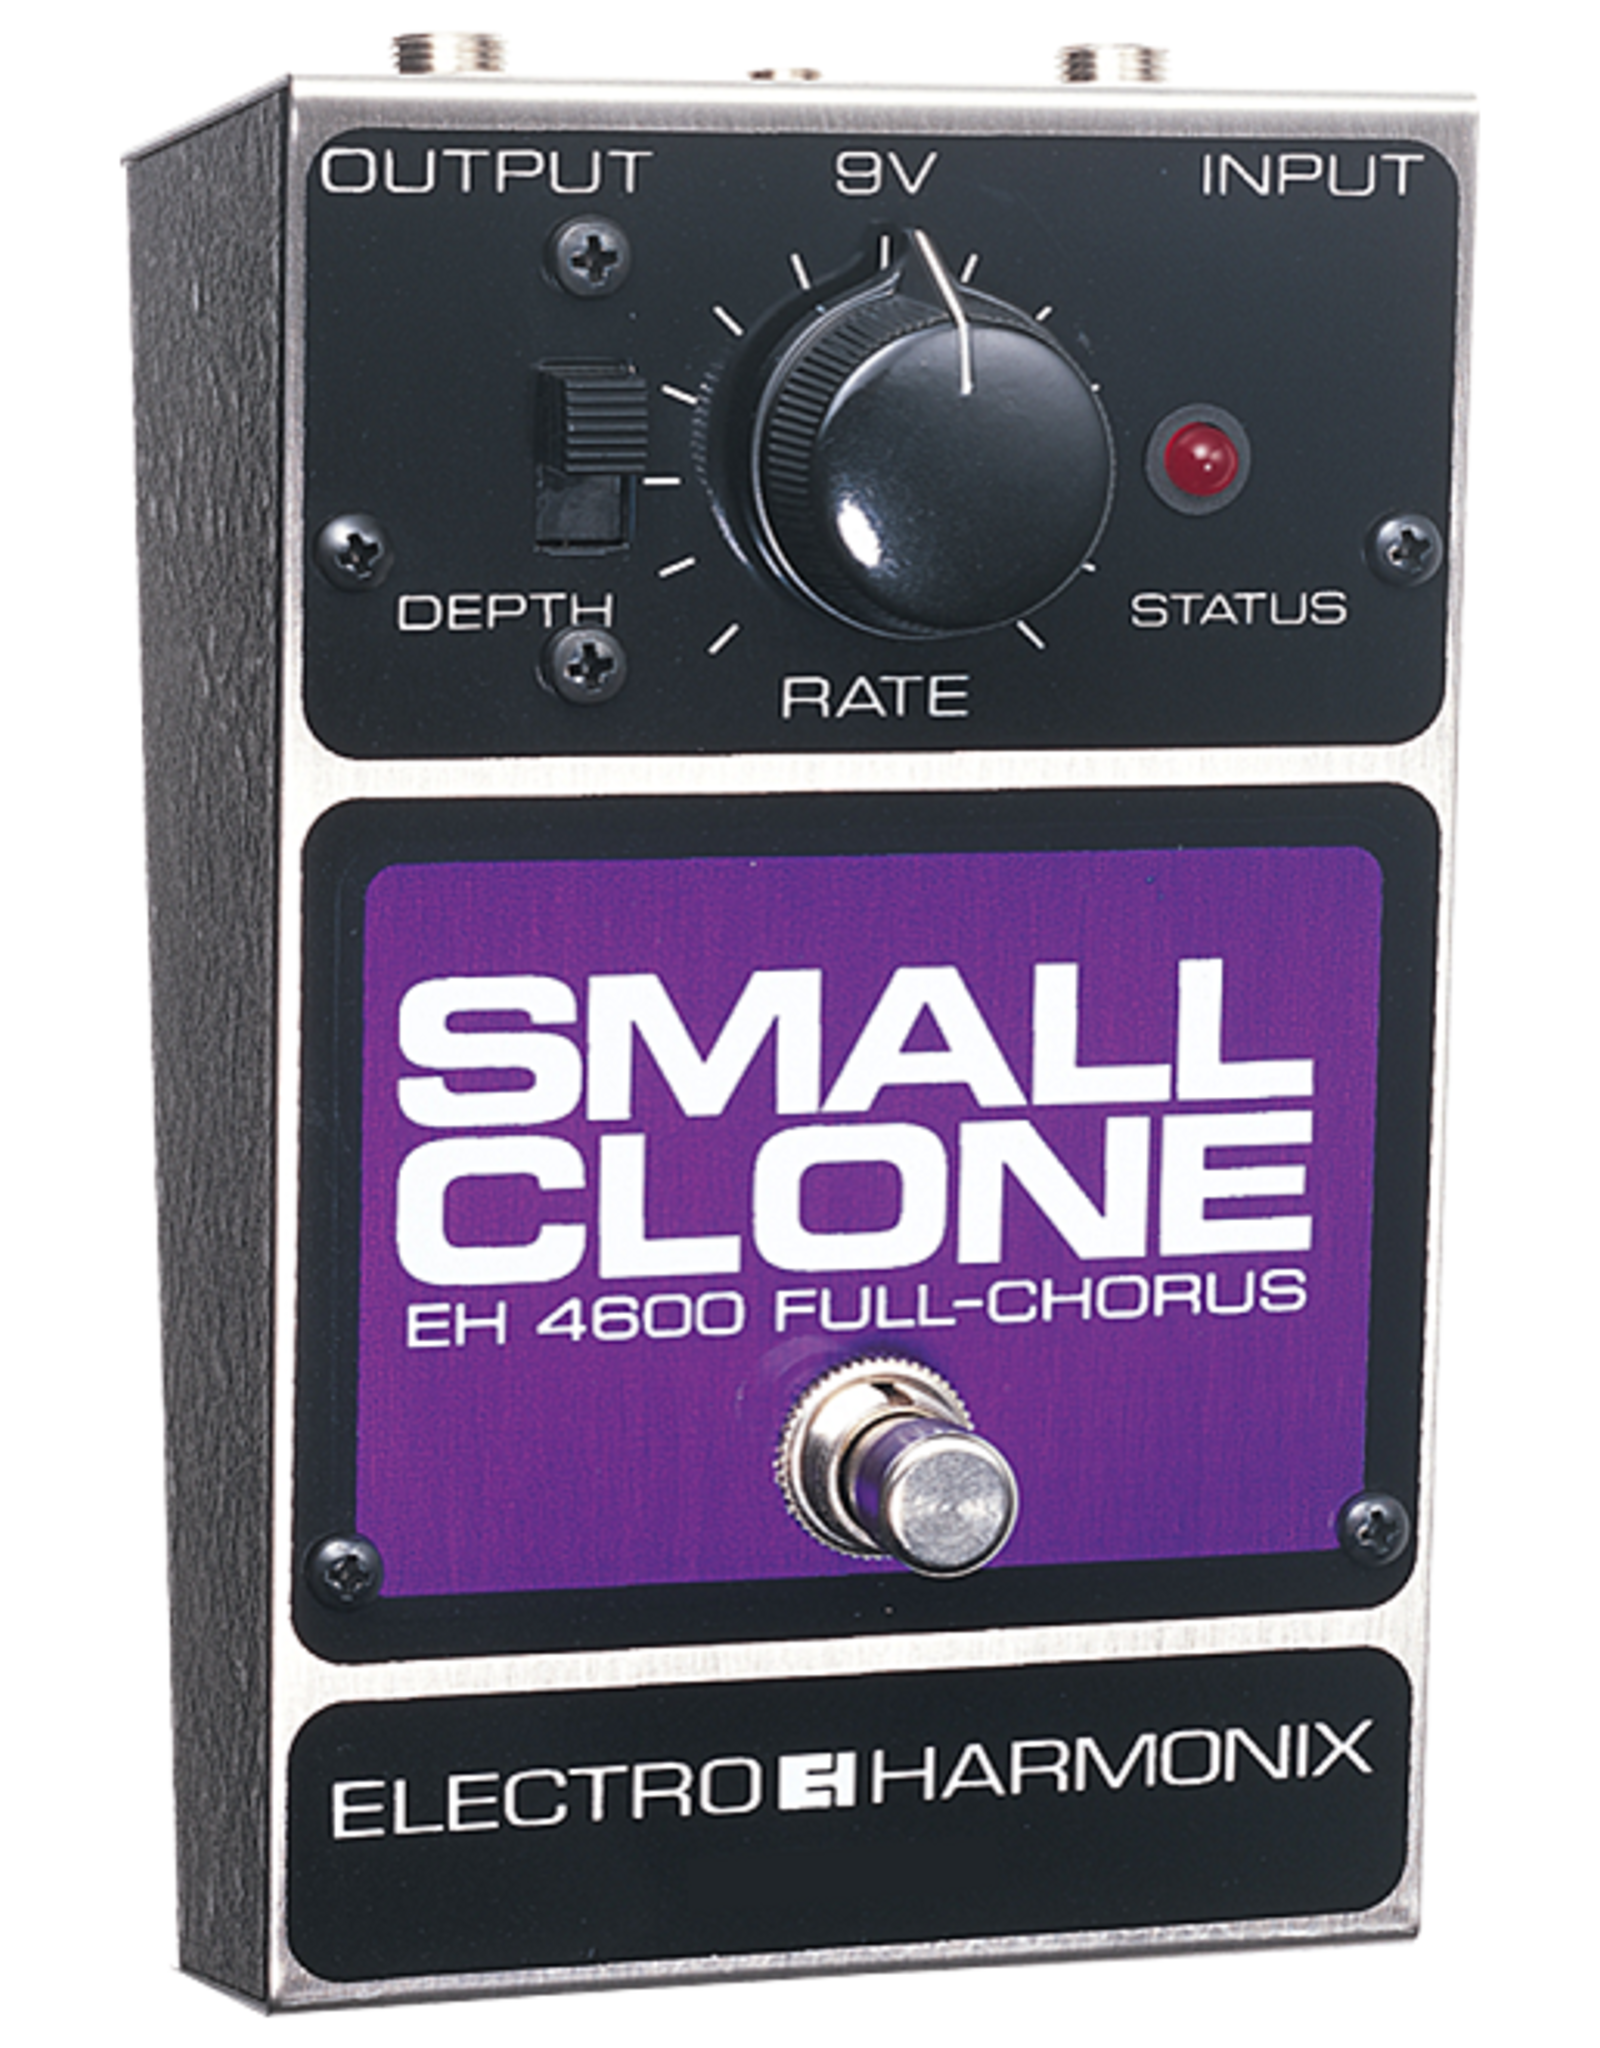 Electro-Harmonix EHX SMALL CLONE Analog Chorus Battery included, 9DC-100 PSU optional